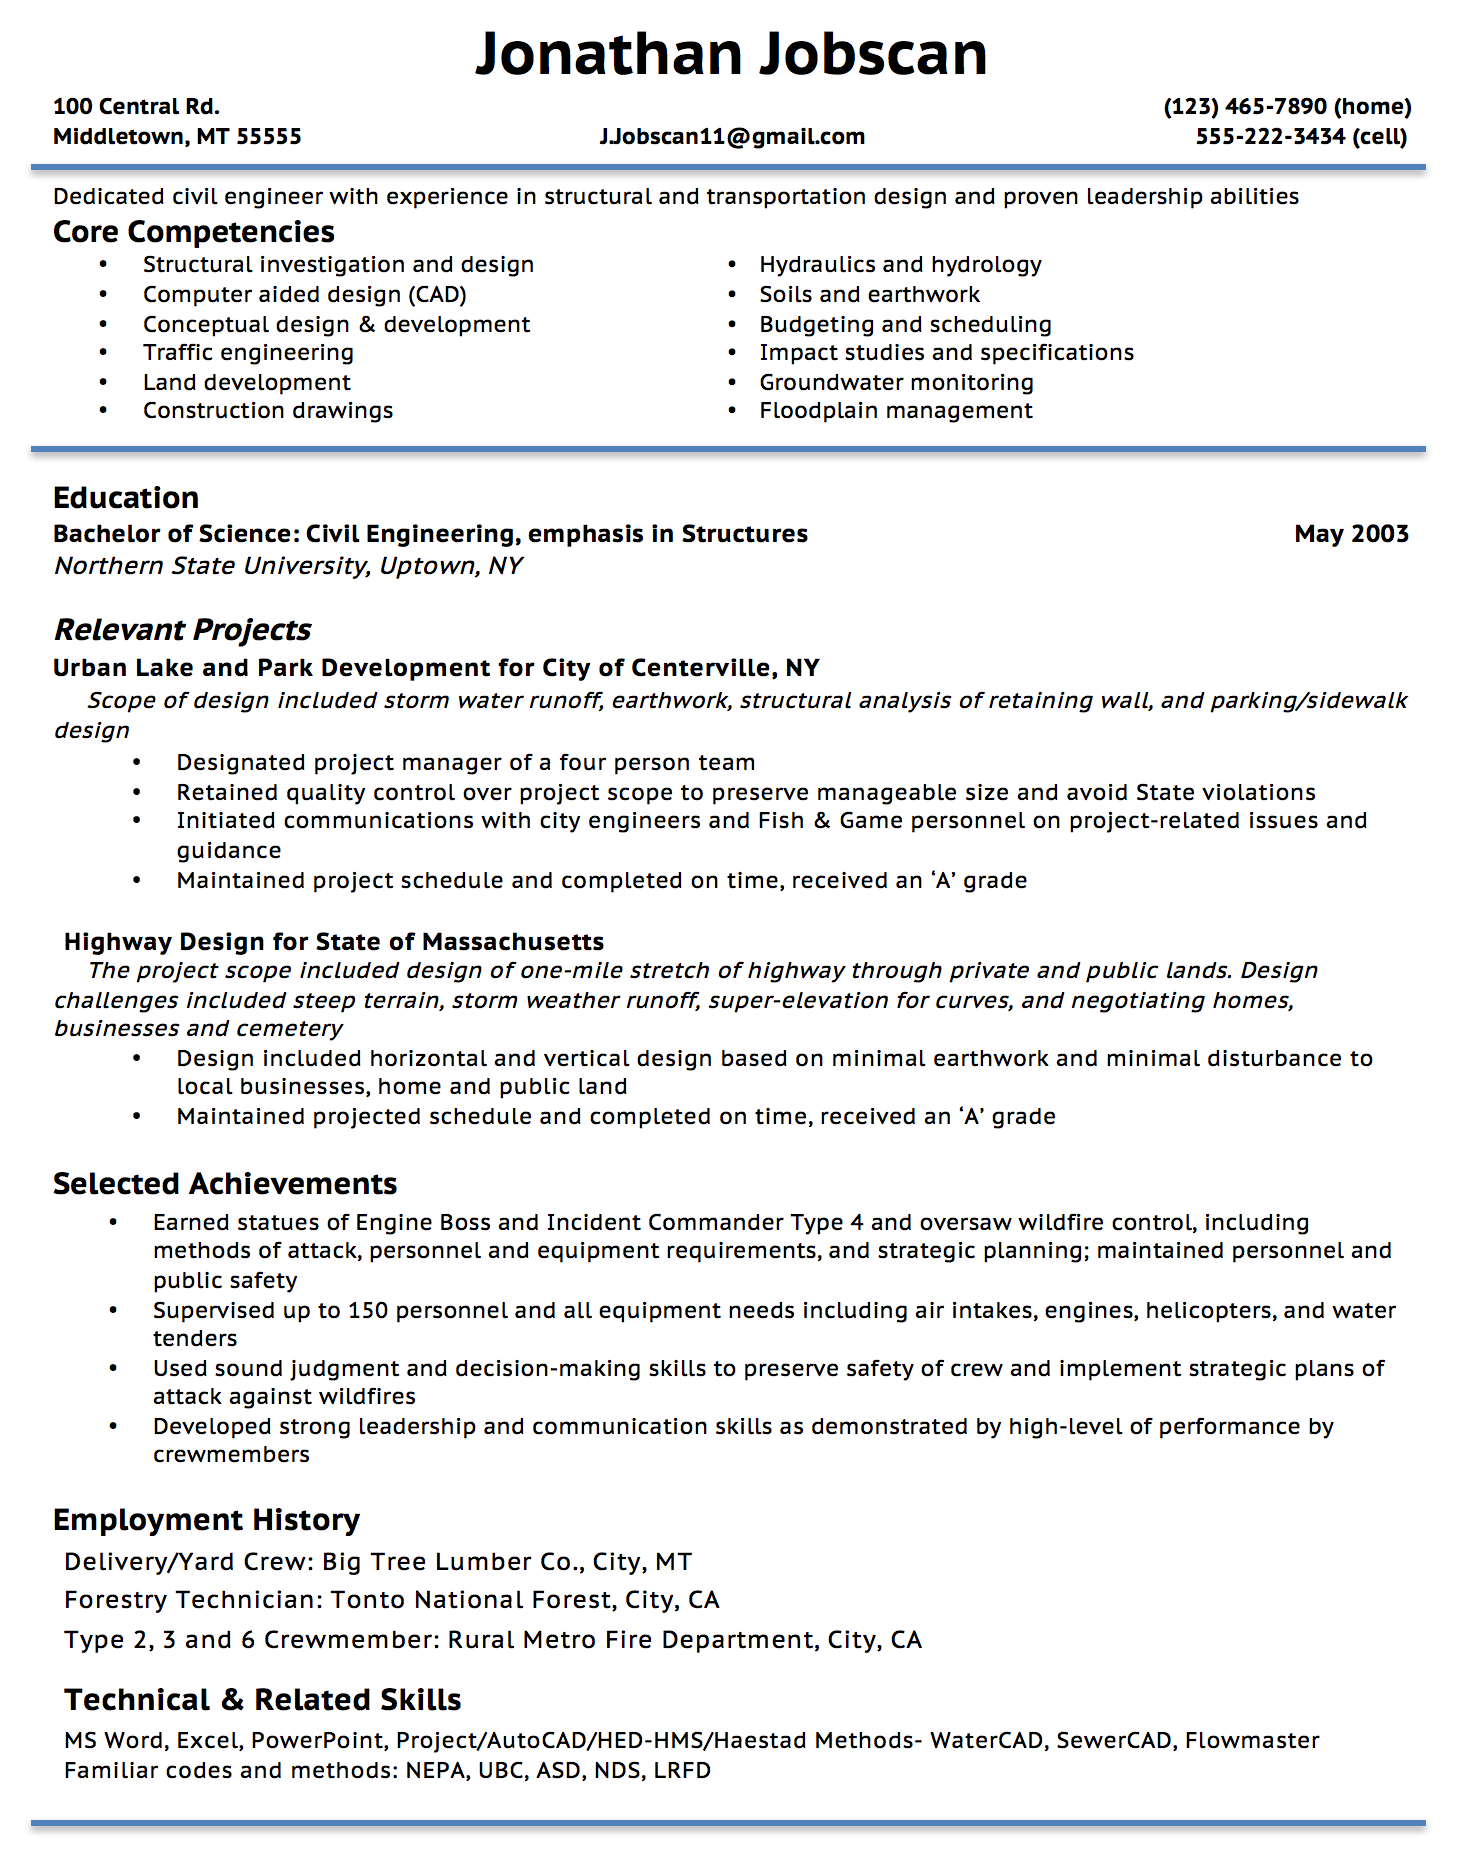 Opposenewapstandardsus  Ravishing Resume Writing Guide  Jobscan With Interesting Example Of A Functional Resume Format With Cool Example Of Resume Skills Also Hostess Resume Skills In Addition Independent Contractor Resume And Microsoft Word Resume Template  As Well As Simple Resume Samples Additionally Resume Qualifications Example From Jobscanco With Opposenewapstandardsus  Interesting Resume Writing Guide  Jobscan With Cool Example Of A Functional Resume Format And Ravishing Example Of Resume Skills Also Hostess Resume Skills In Addition Independent Contractor Resume From Jobscanco